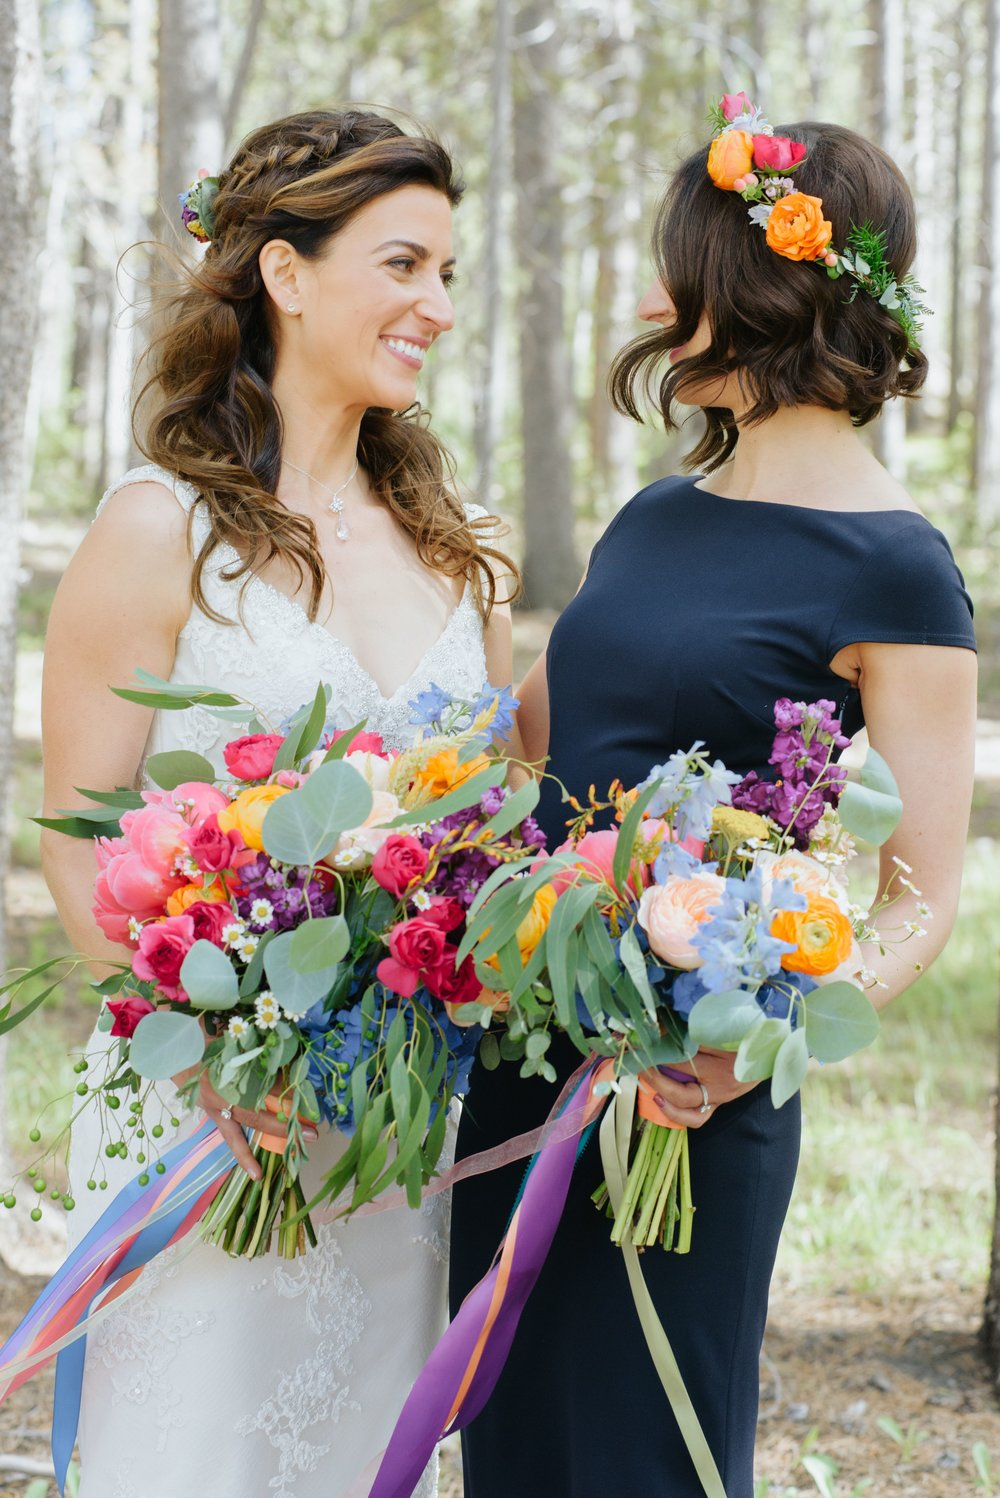 Flowers by Lace and Lilies, bridesmaid bouquets, bridesmaid flowers, neutral wedding, greenery wedding, foliage, green and white, bride and bridesmaid, colorful flowers, vibrant wedding flowers, wedding flowers, jewel tones